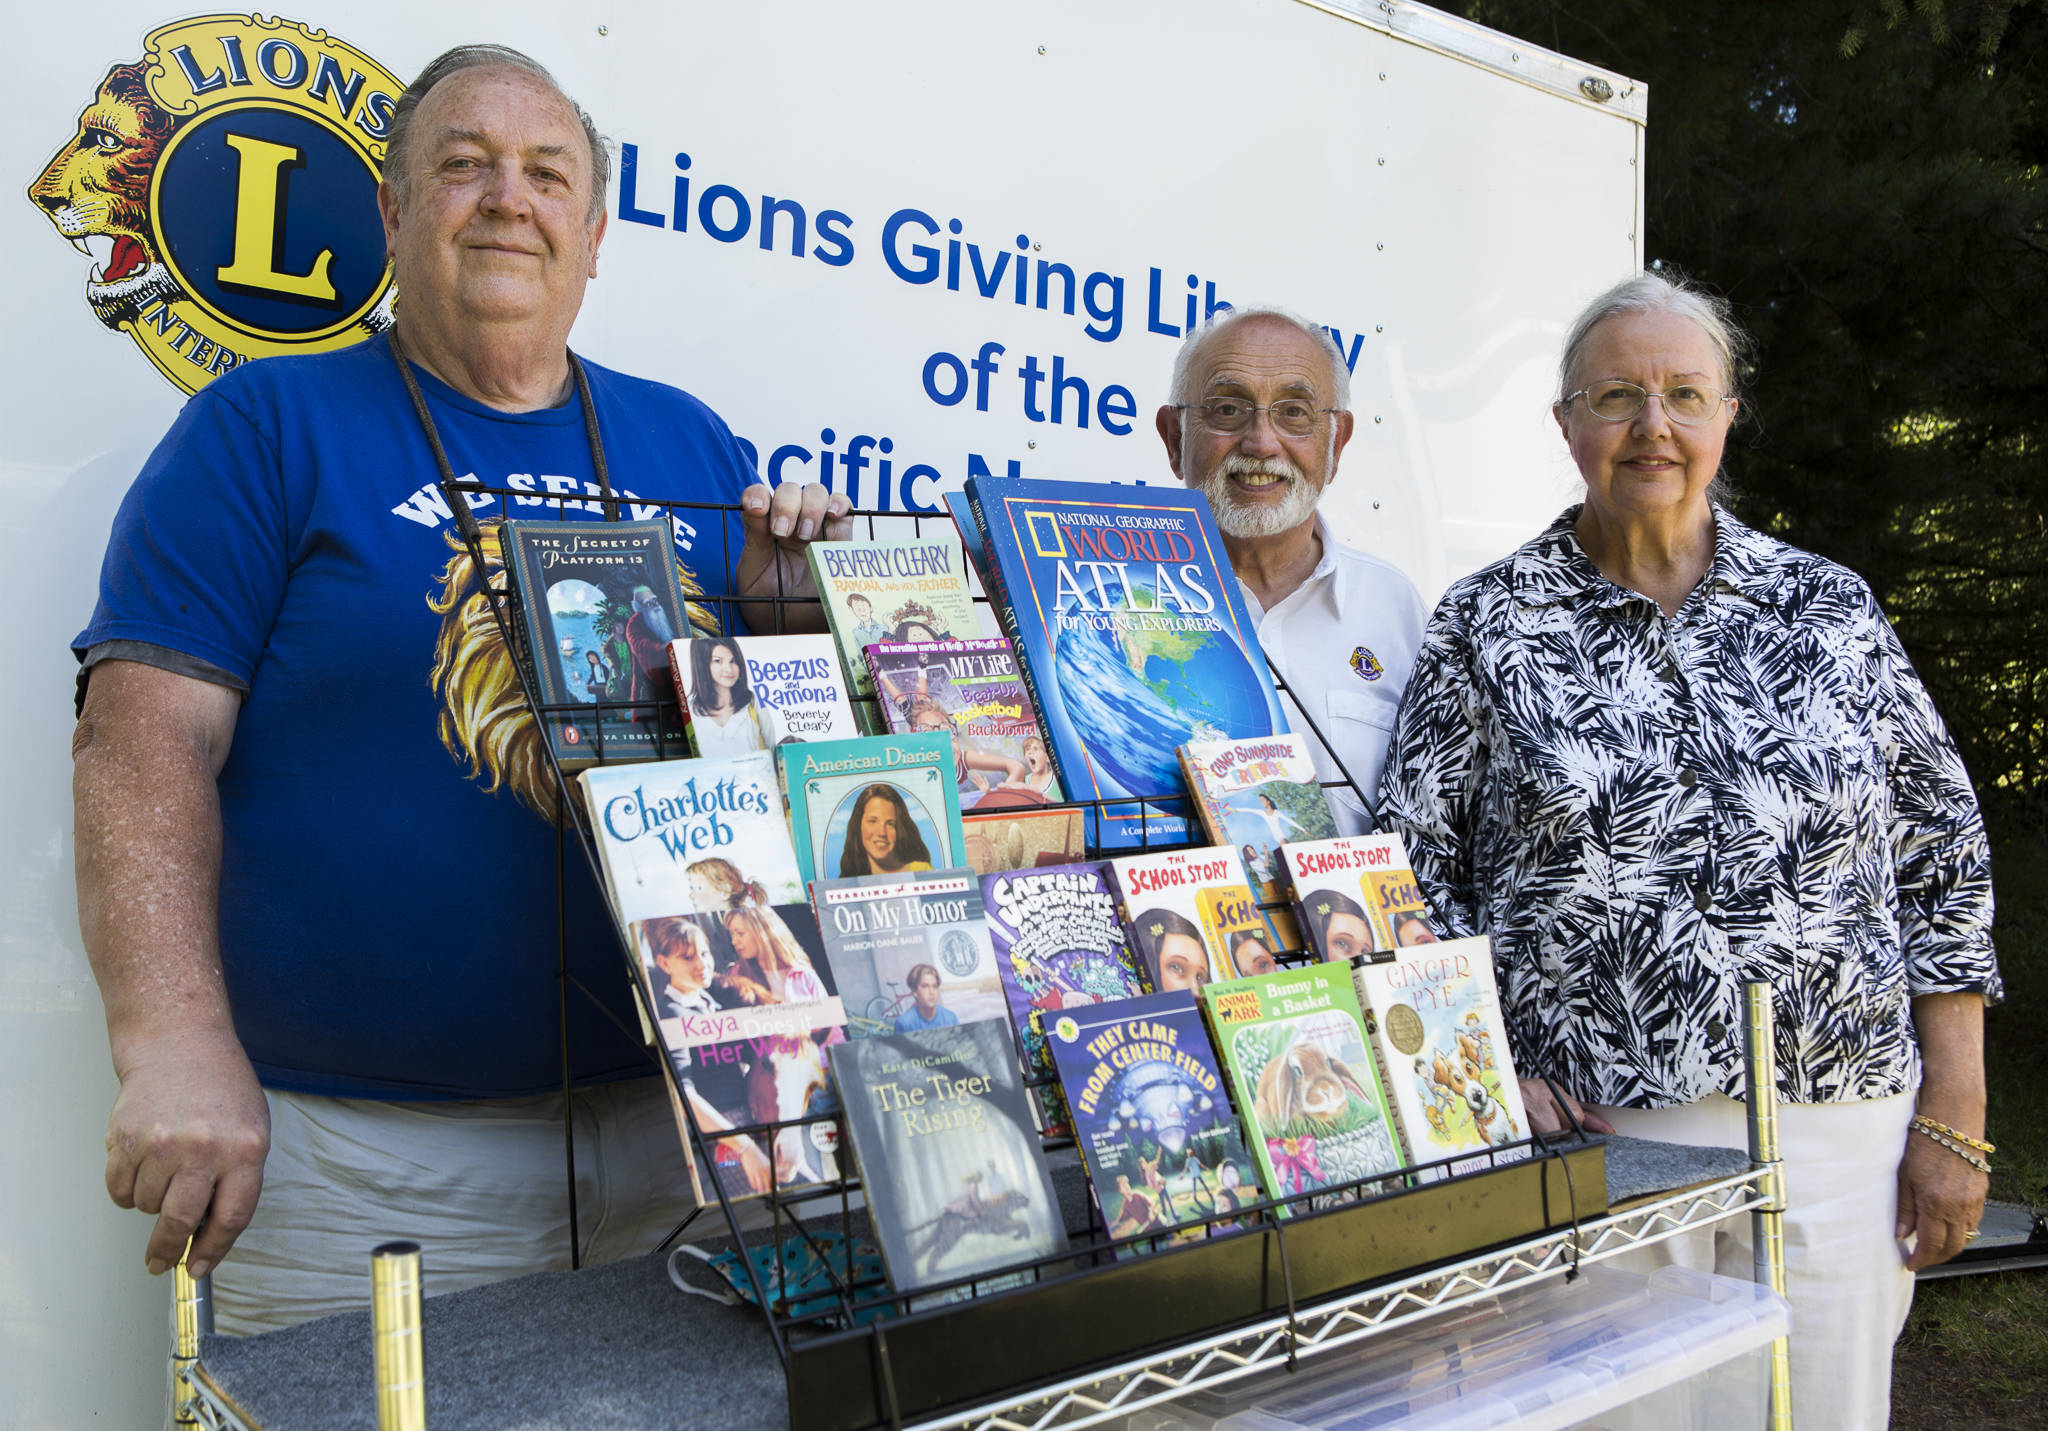 Lions Club members Michael Lally (left), Art Ruben and Judith Ruben with a selection of their donated books on Tuesday in Tulalip. (Olivia Vanni / The Herald)